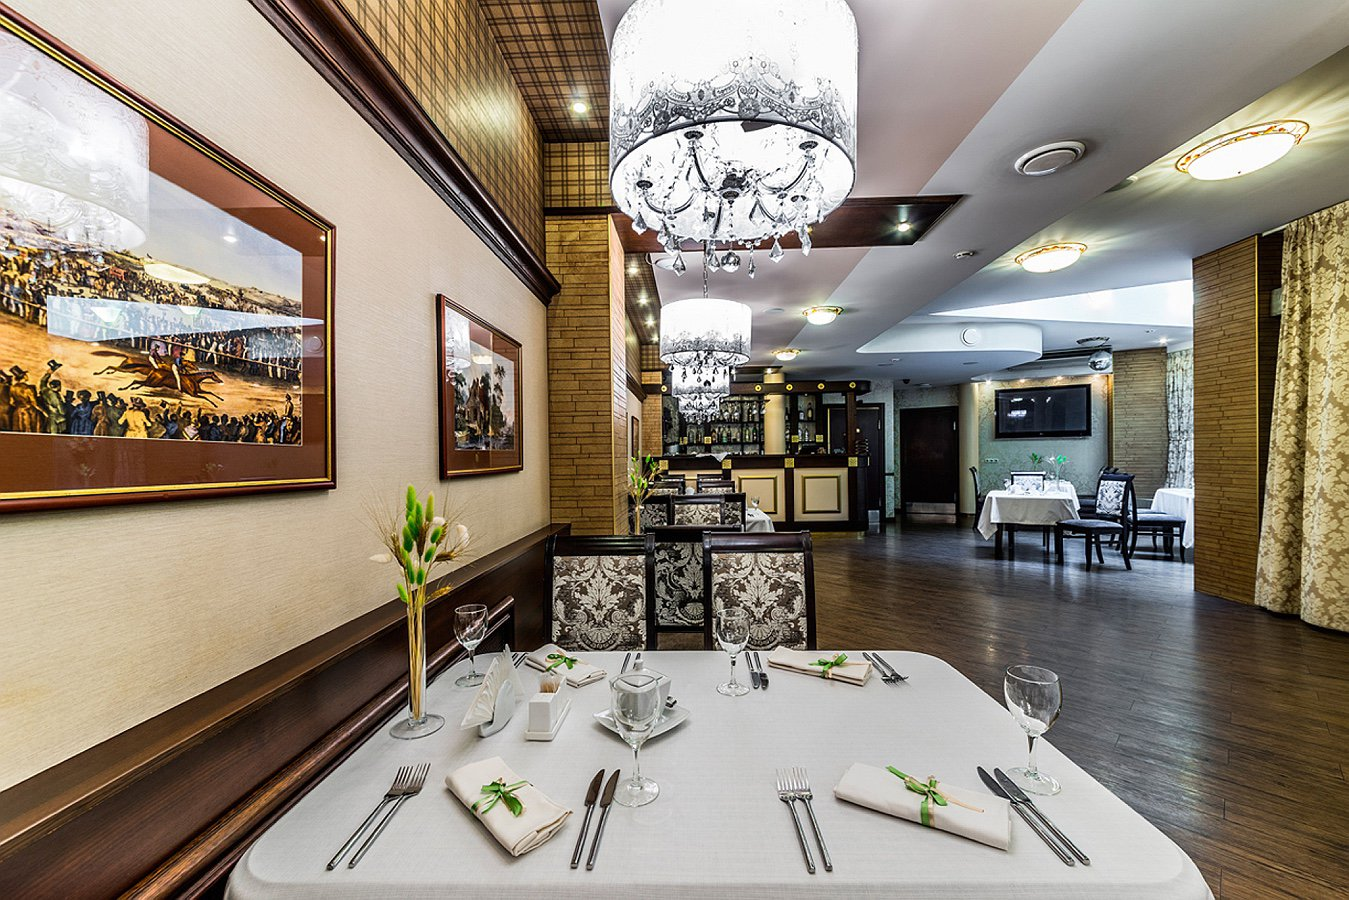 Restaurant_Favorite_Big_Hall_1_Cronwell_Inn_Stremyannaya.jpg